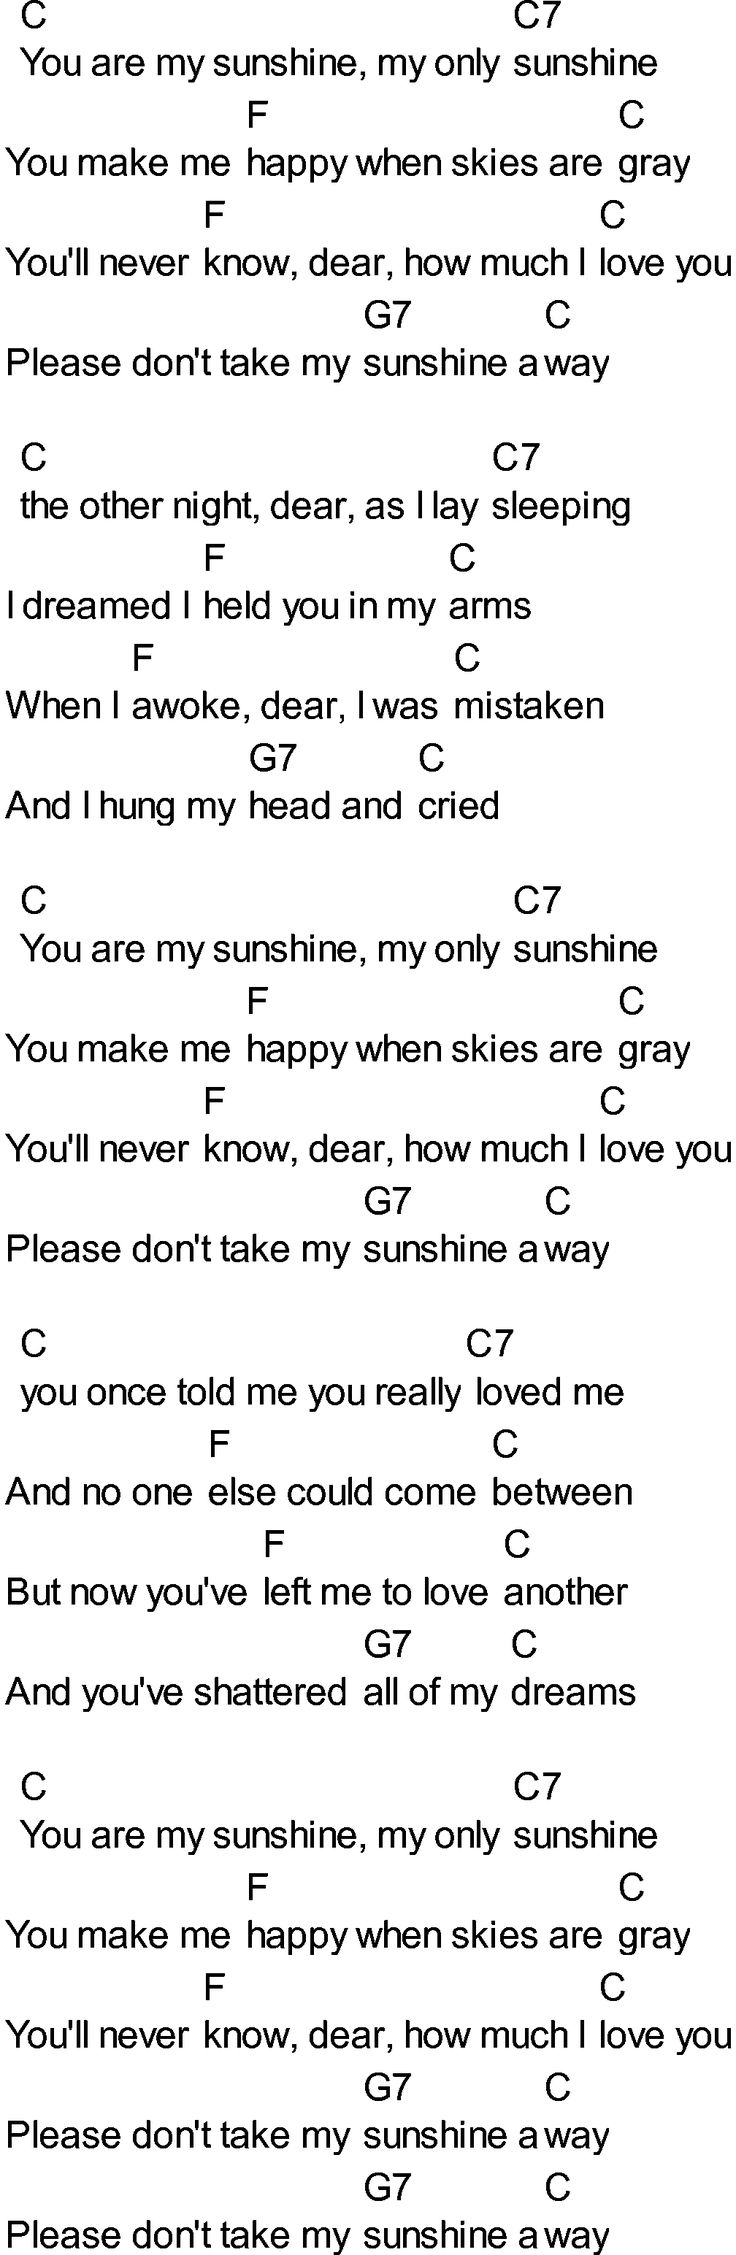 332 best guitar lyrics and chords images on pinterest guitar bluegrass songs with chords you are my sunshine hexwebz Image collections